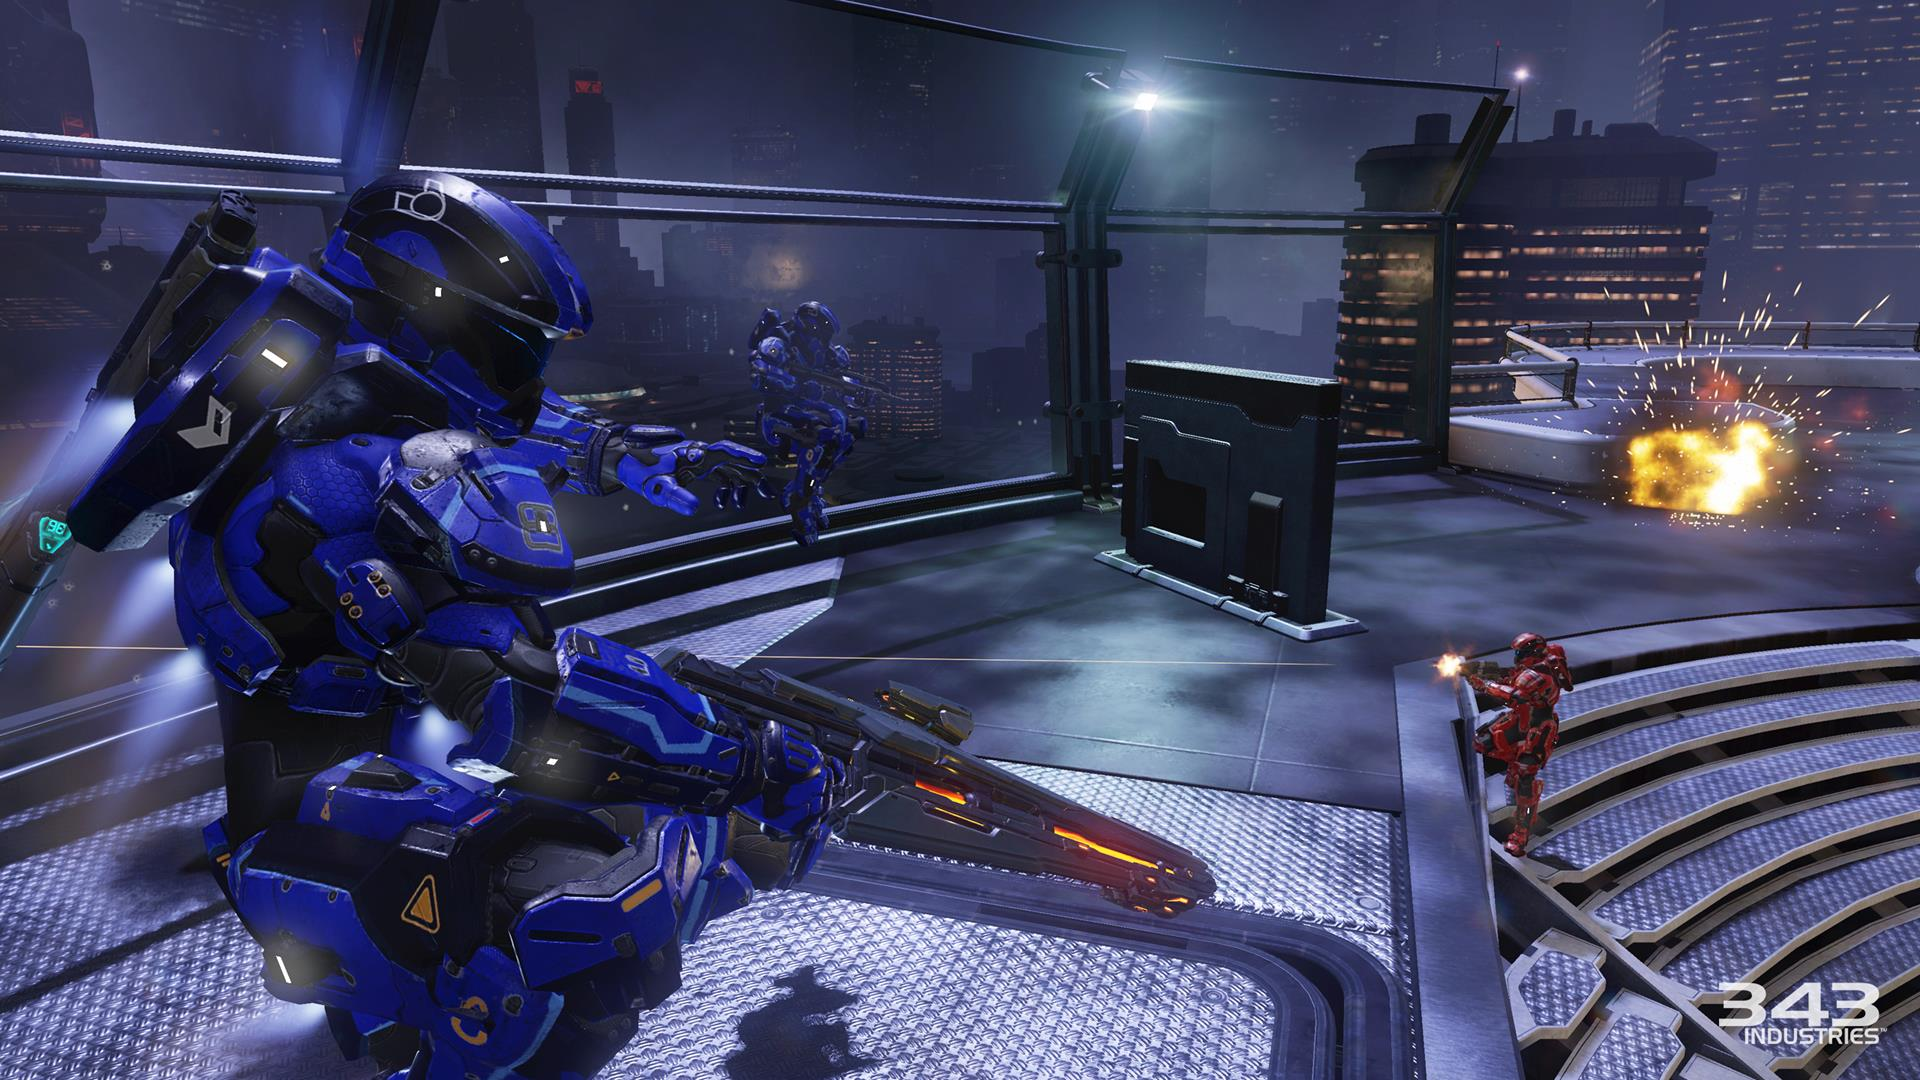 Halo 5: Guardians - watch new campaign and Arena multiplayer